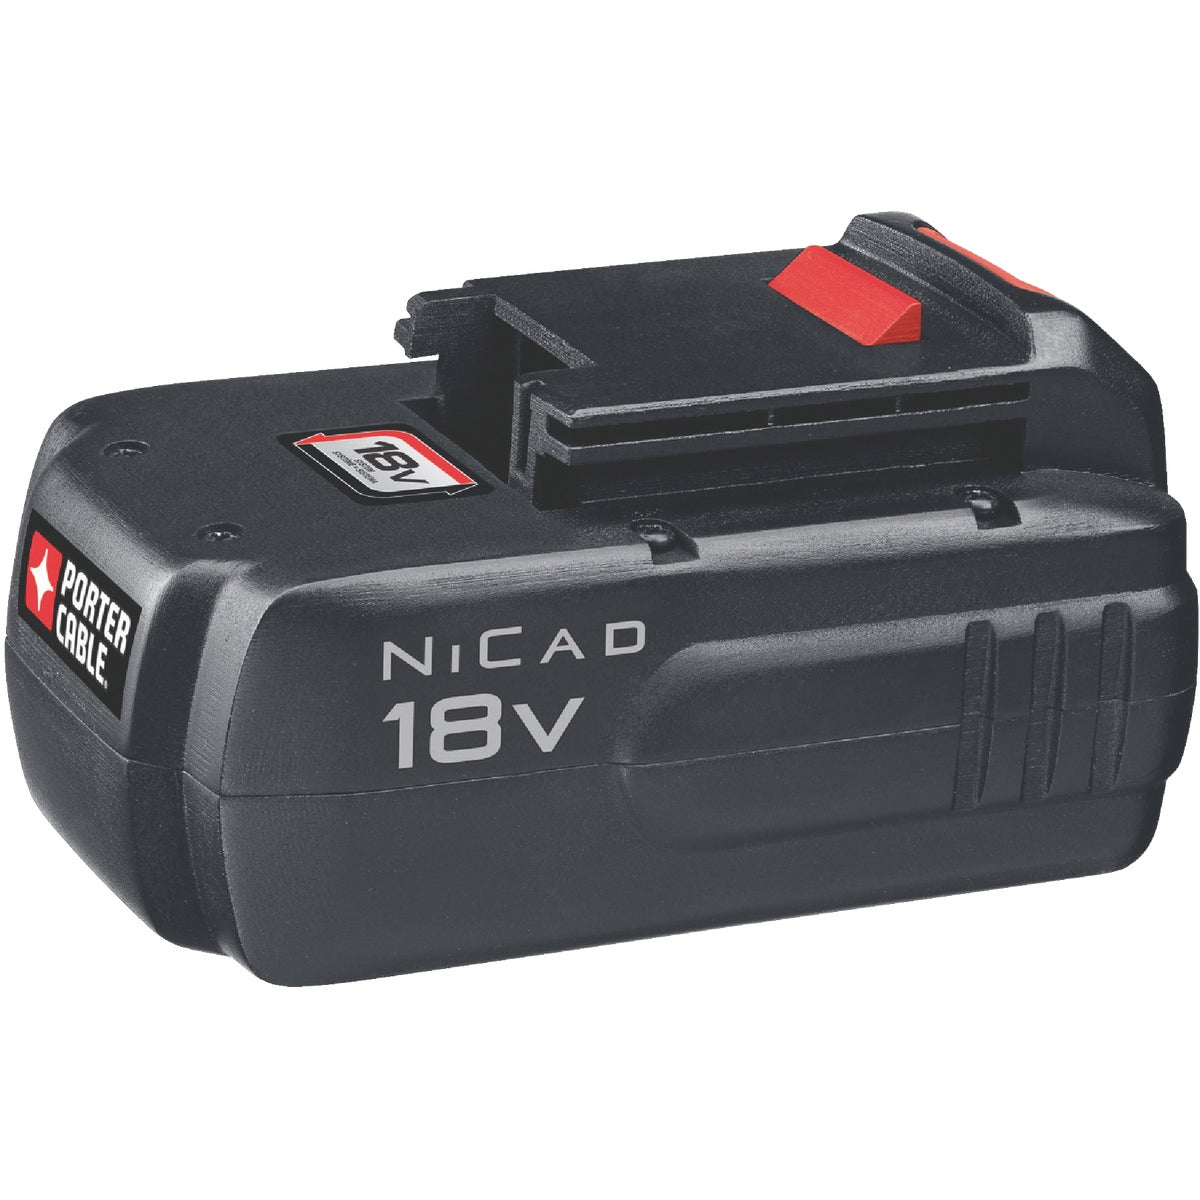 18V NICAD BATTERY - PC18B by Black & Decker